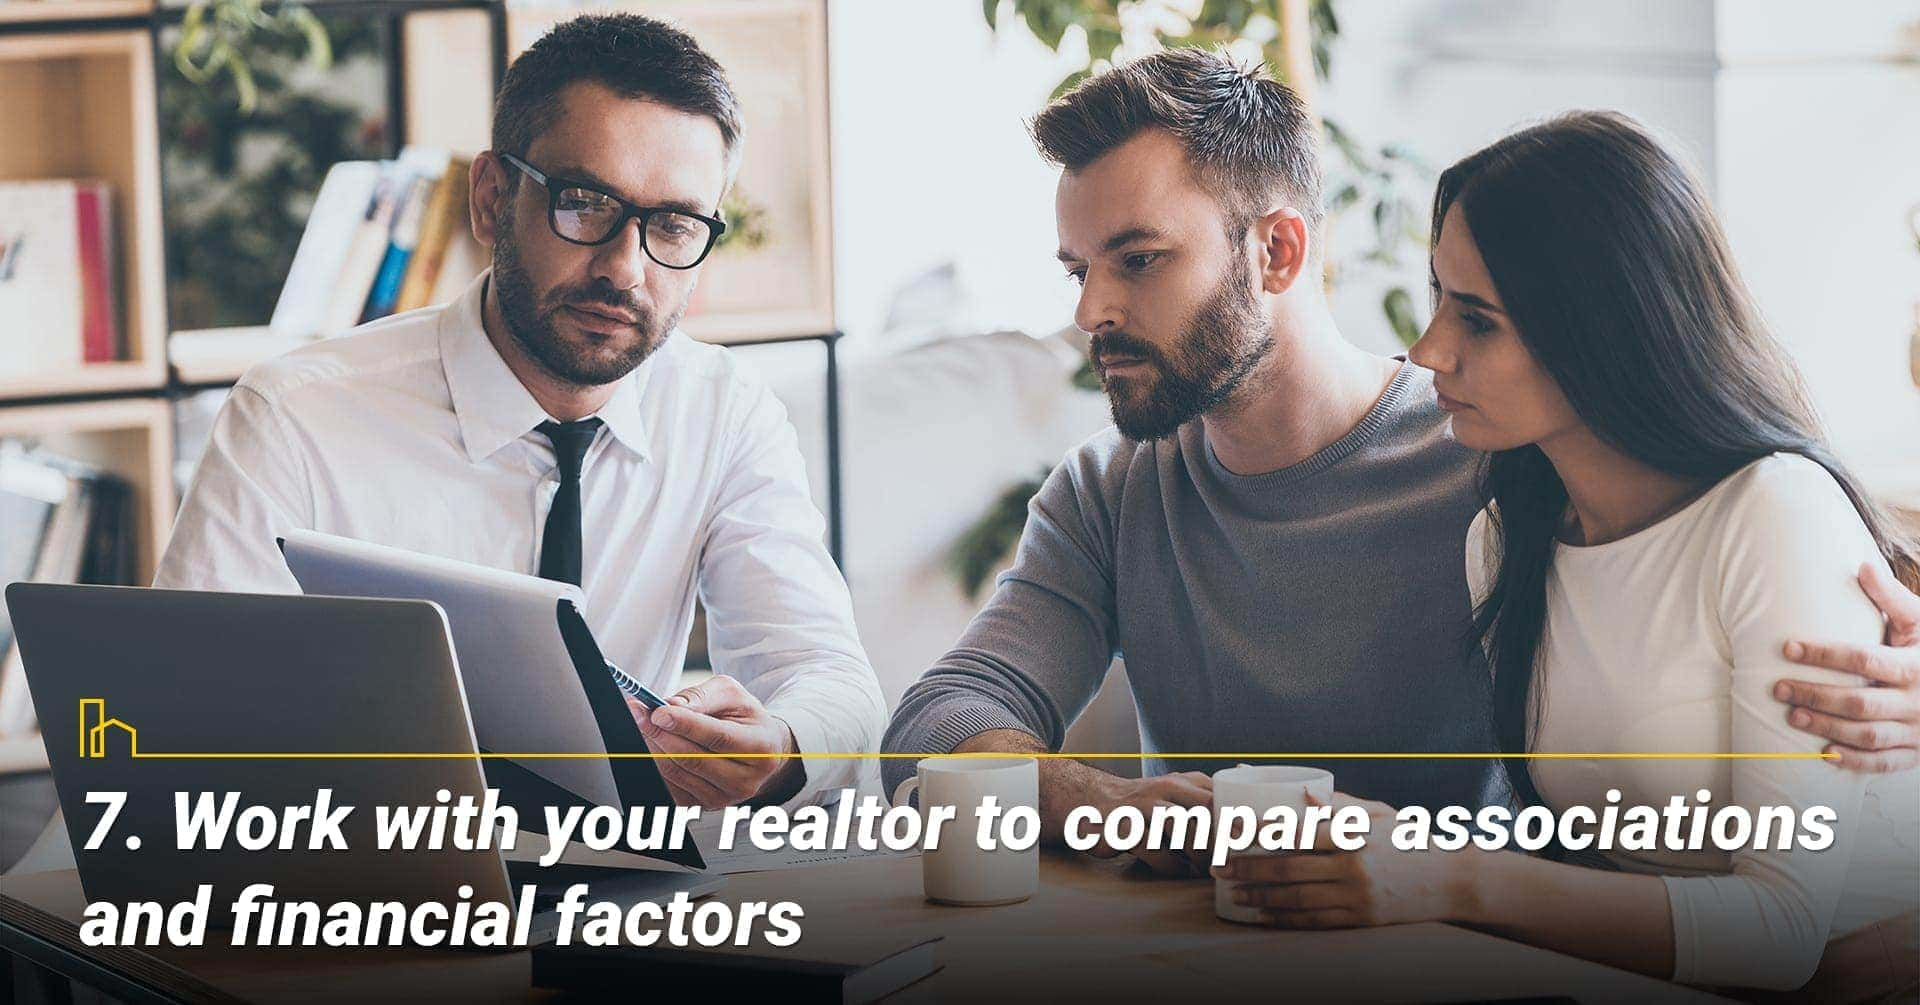 Work with your realtor to compare associations and financial factors